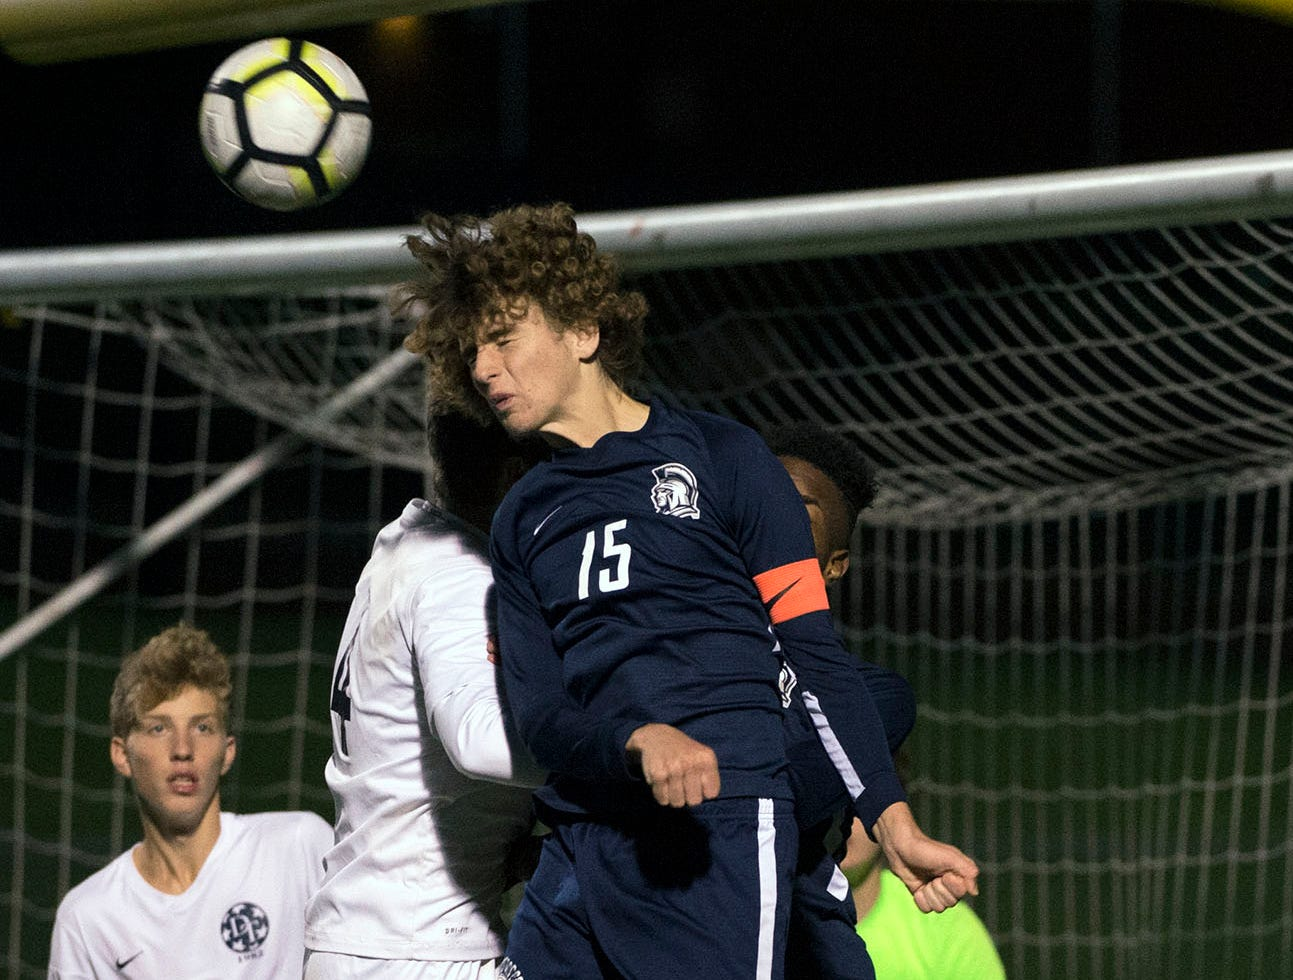 Aaron Maynard (15) heads the ball for Chambersburg. Chambersburg lost a first round D3 soccer match to Dallastown 2-1 on Tuesday, Oct. 23, 2018.